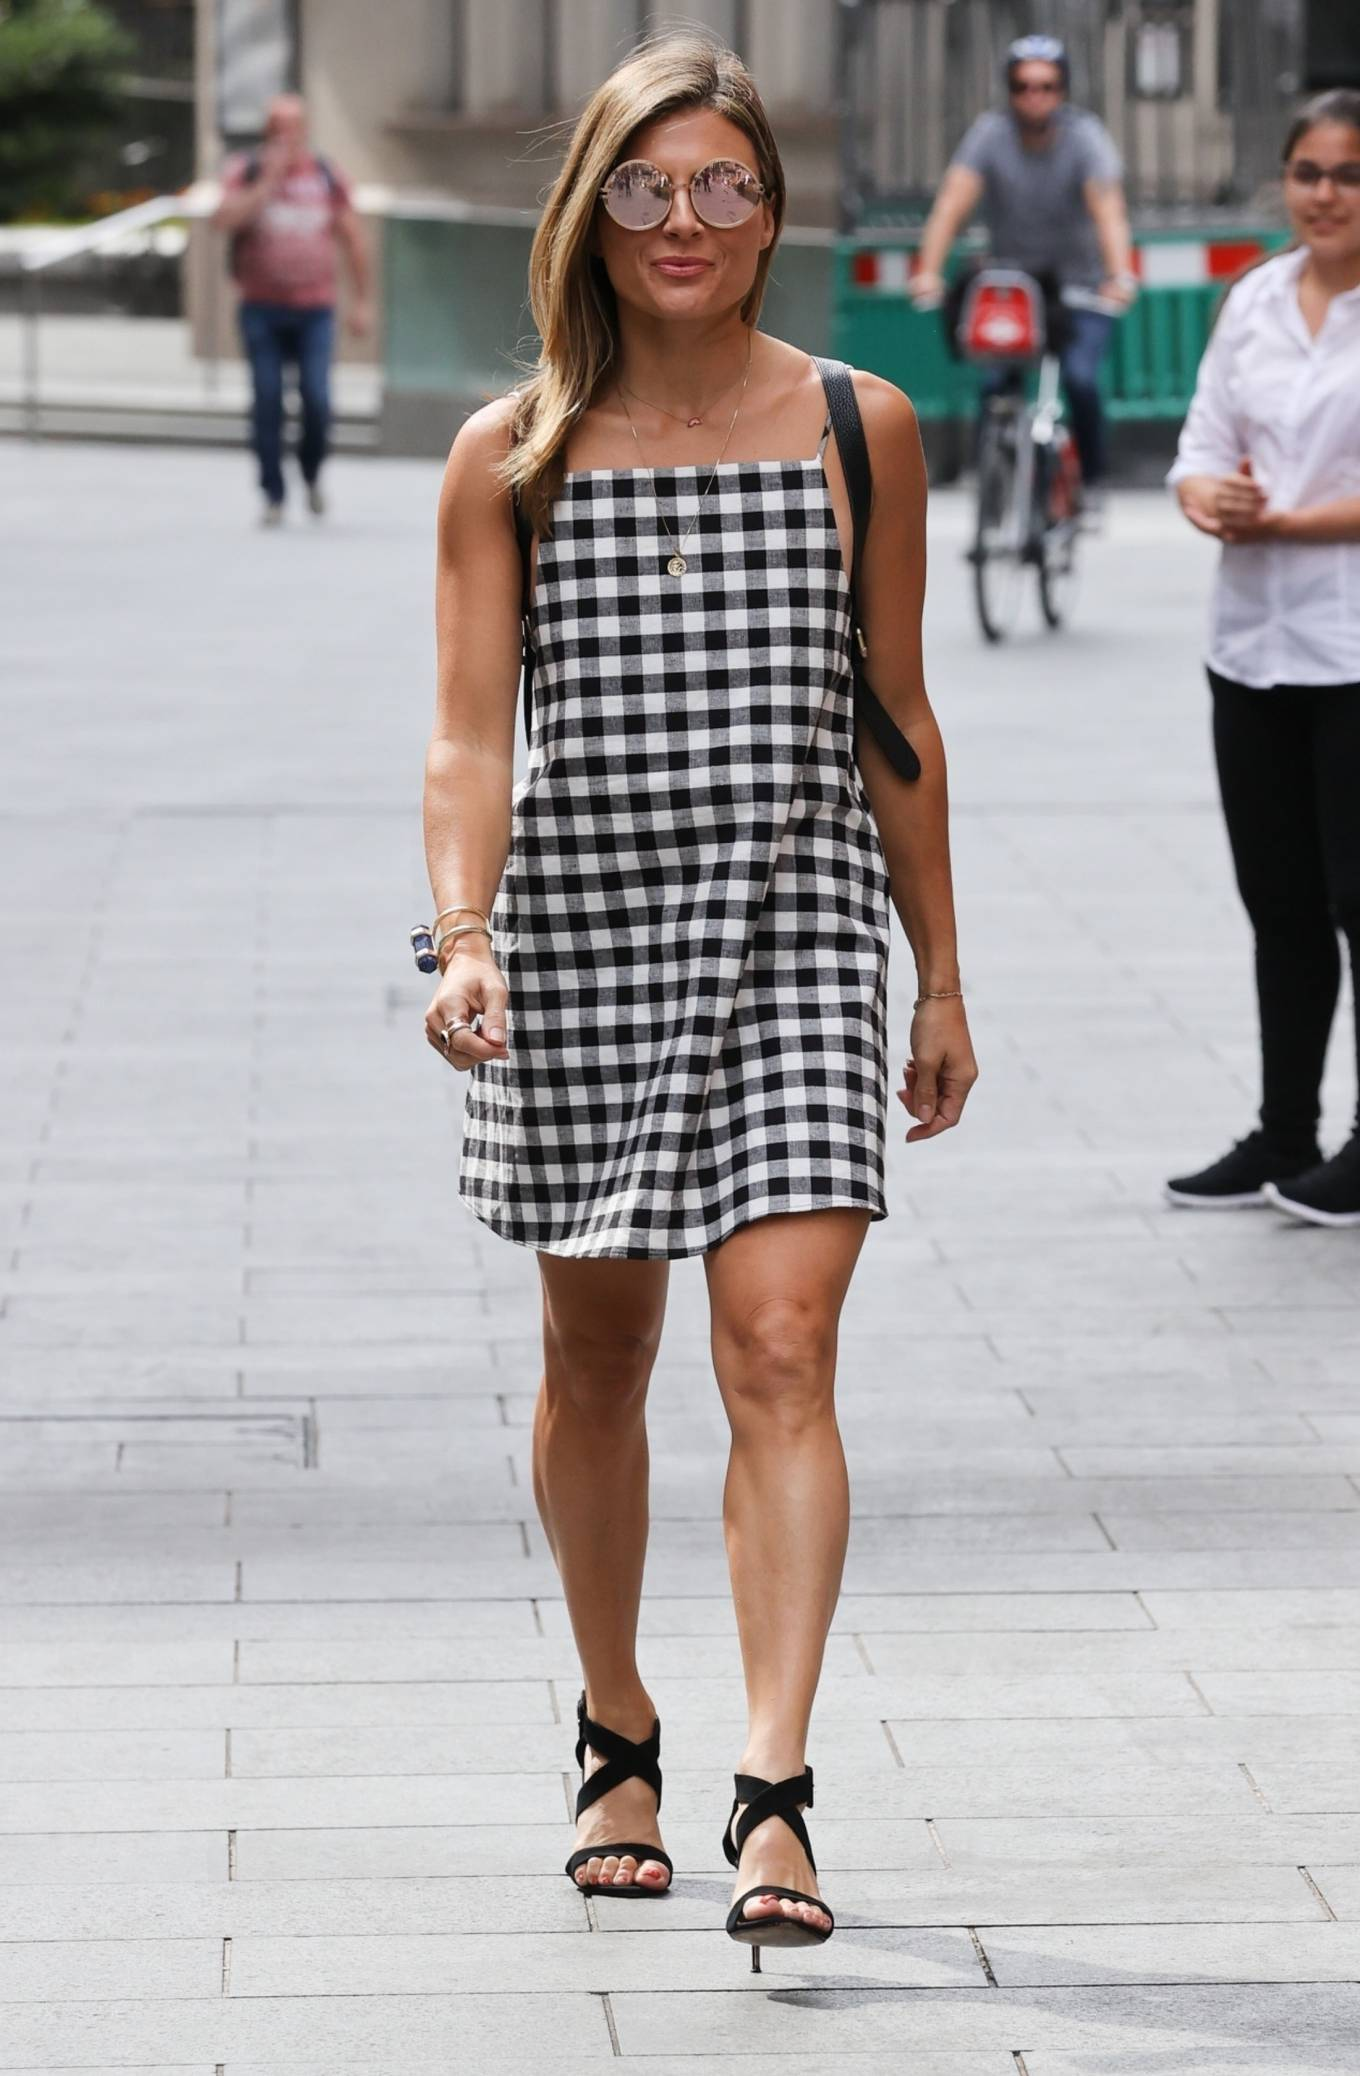 Zoe Hardman - Wears checkered dress while out in London